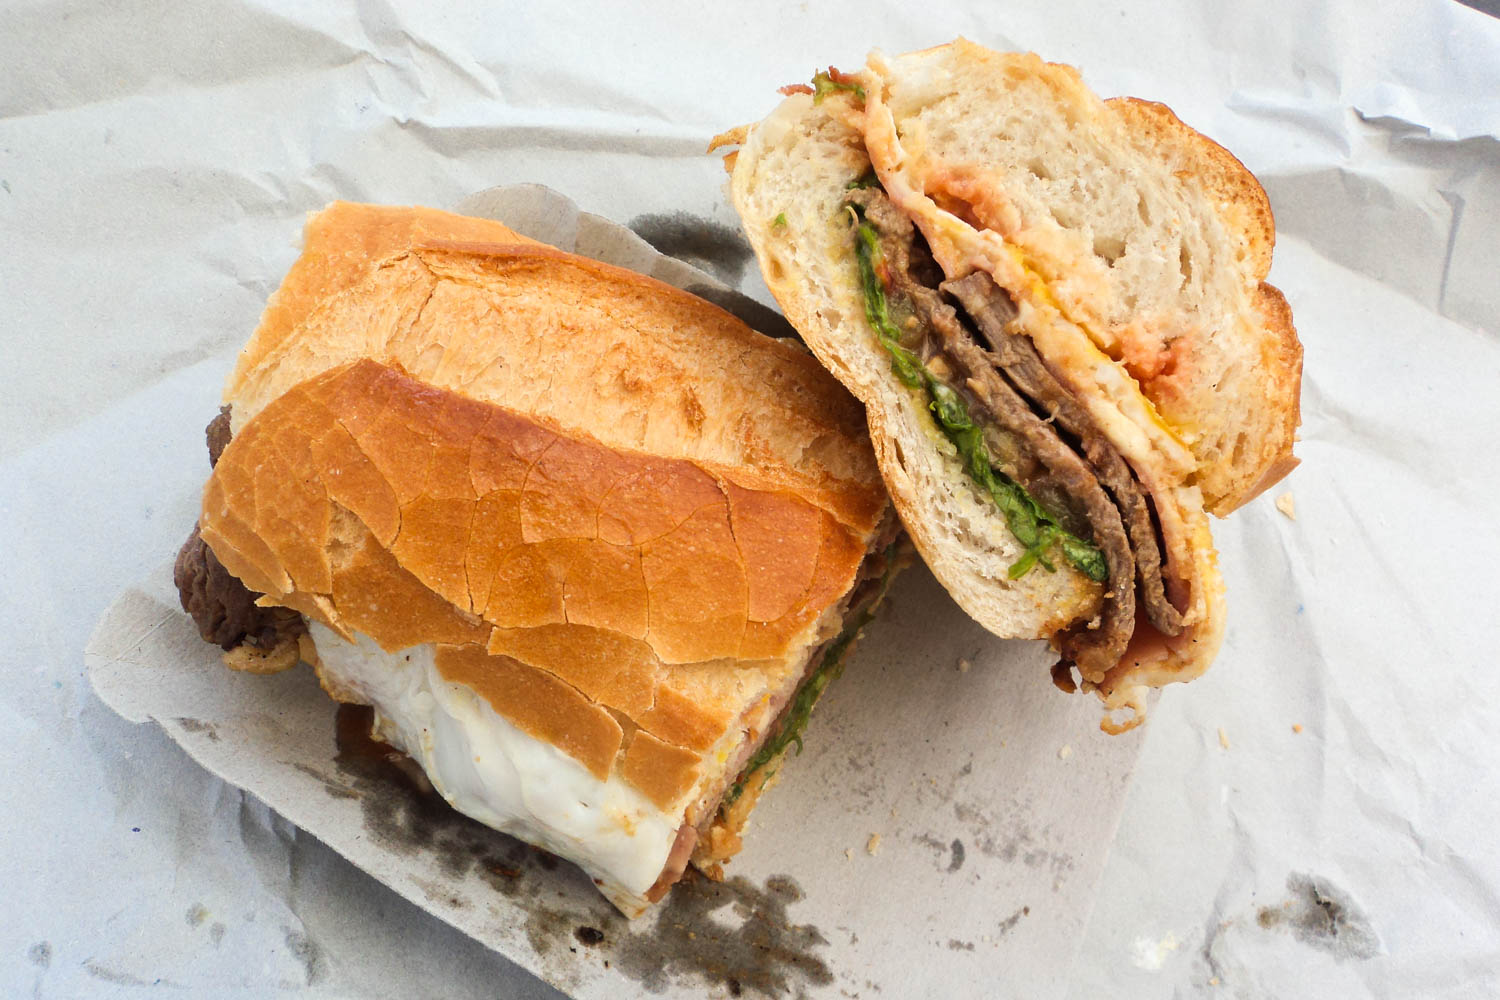 The lomito from Argentina is one of the best sandwiches in the world.